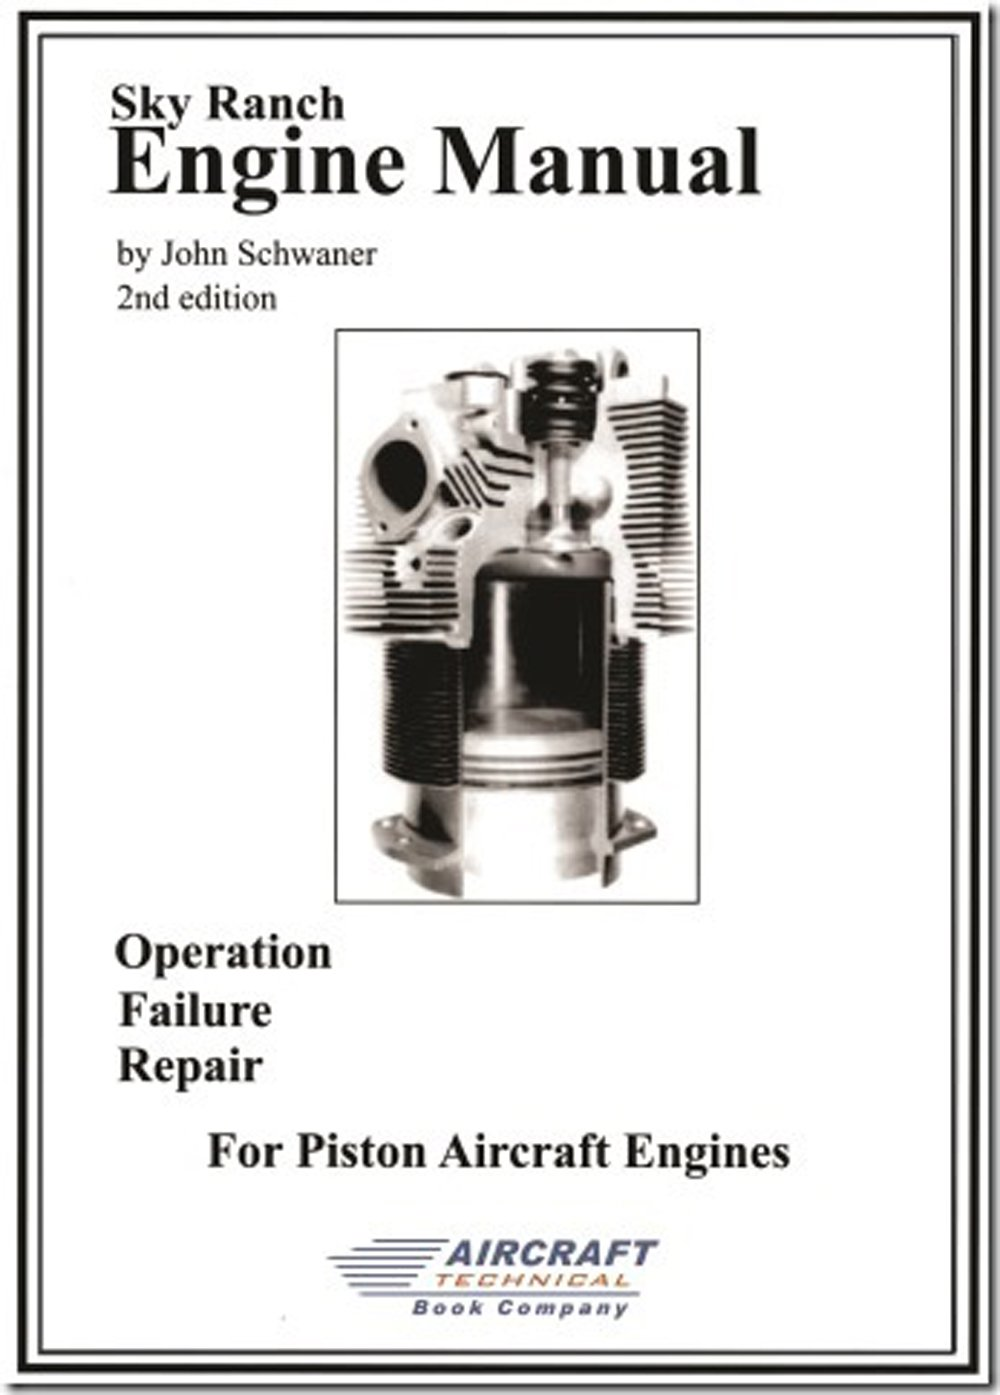 Sky Ranch Engine Manual: Operation, failure, repair, piston aircraft  engines: John Schwaner: 9780983865896: Amazon.com: Books